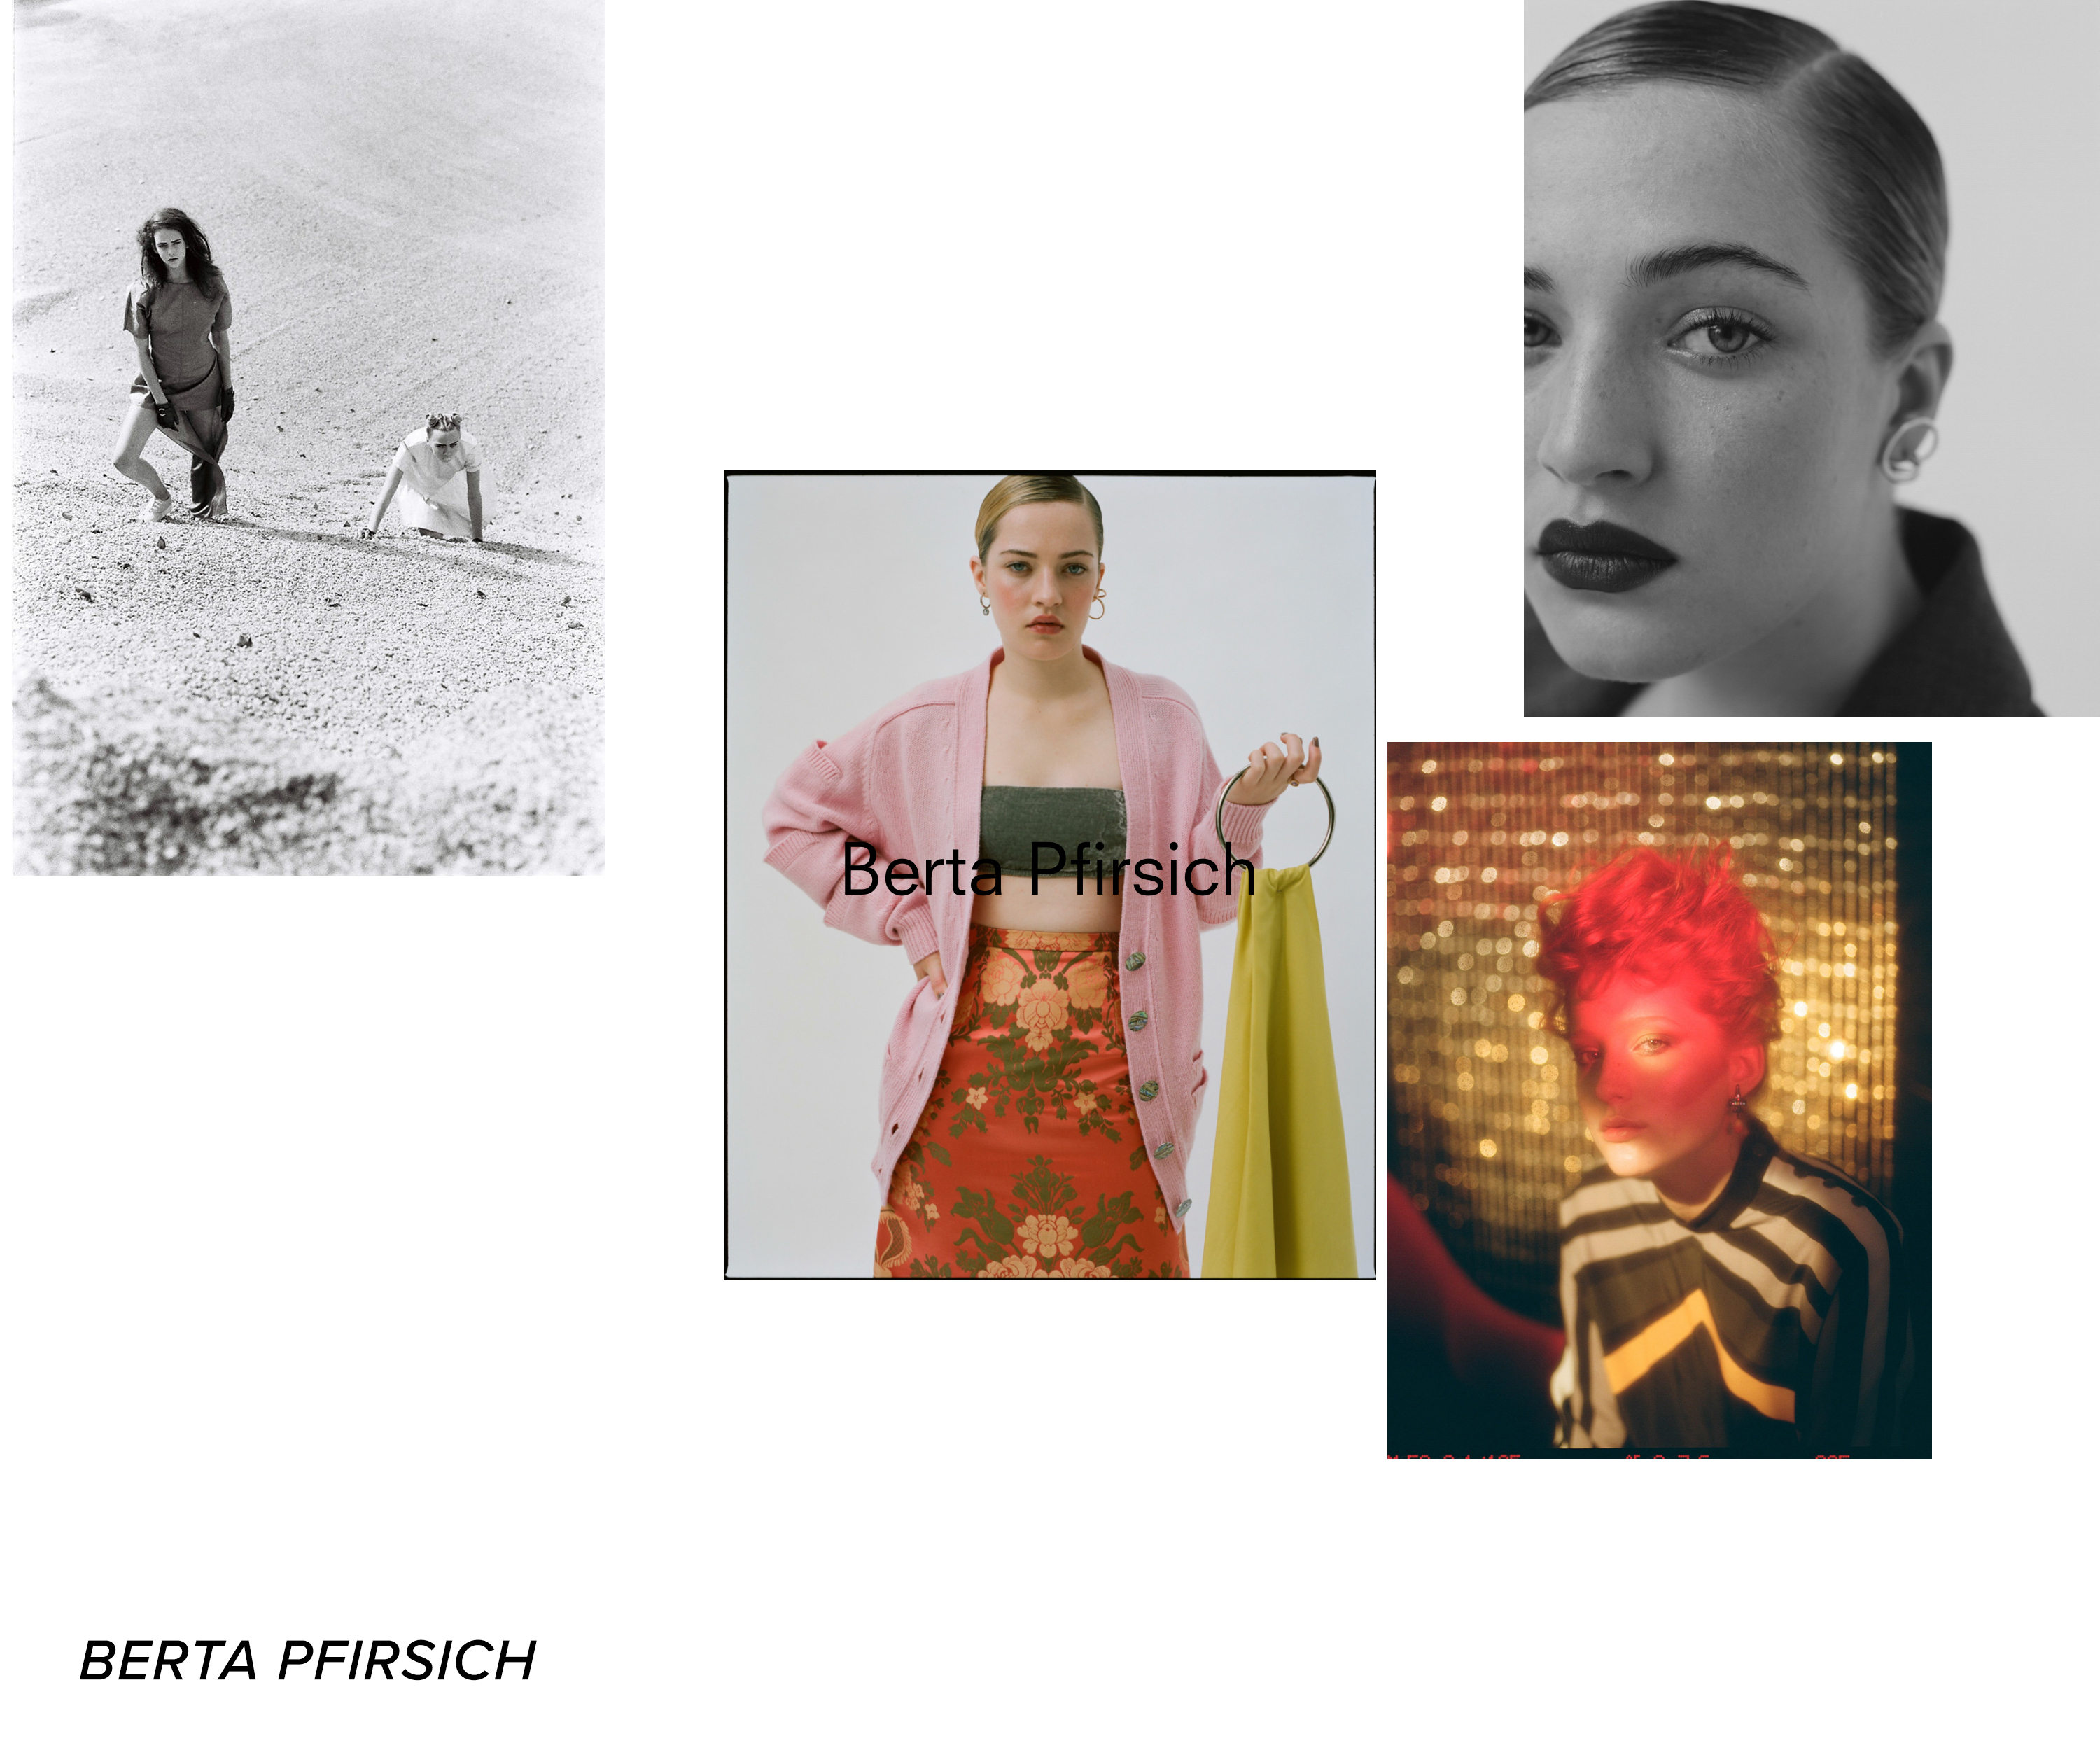 Berta Pfirsich - 19 Photographers Taking Photos of Your Favorite Models and Designers - FilterGrade